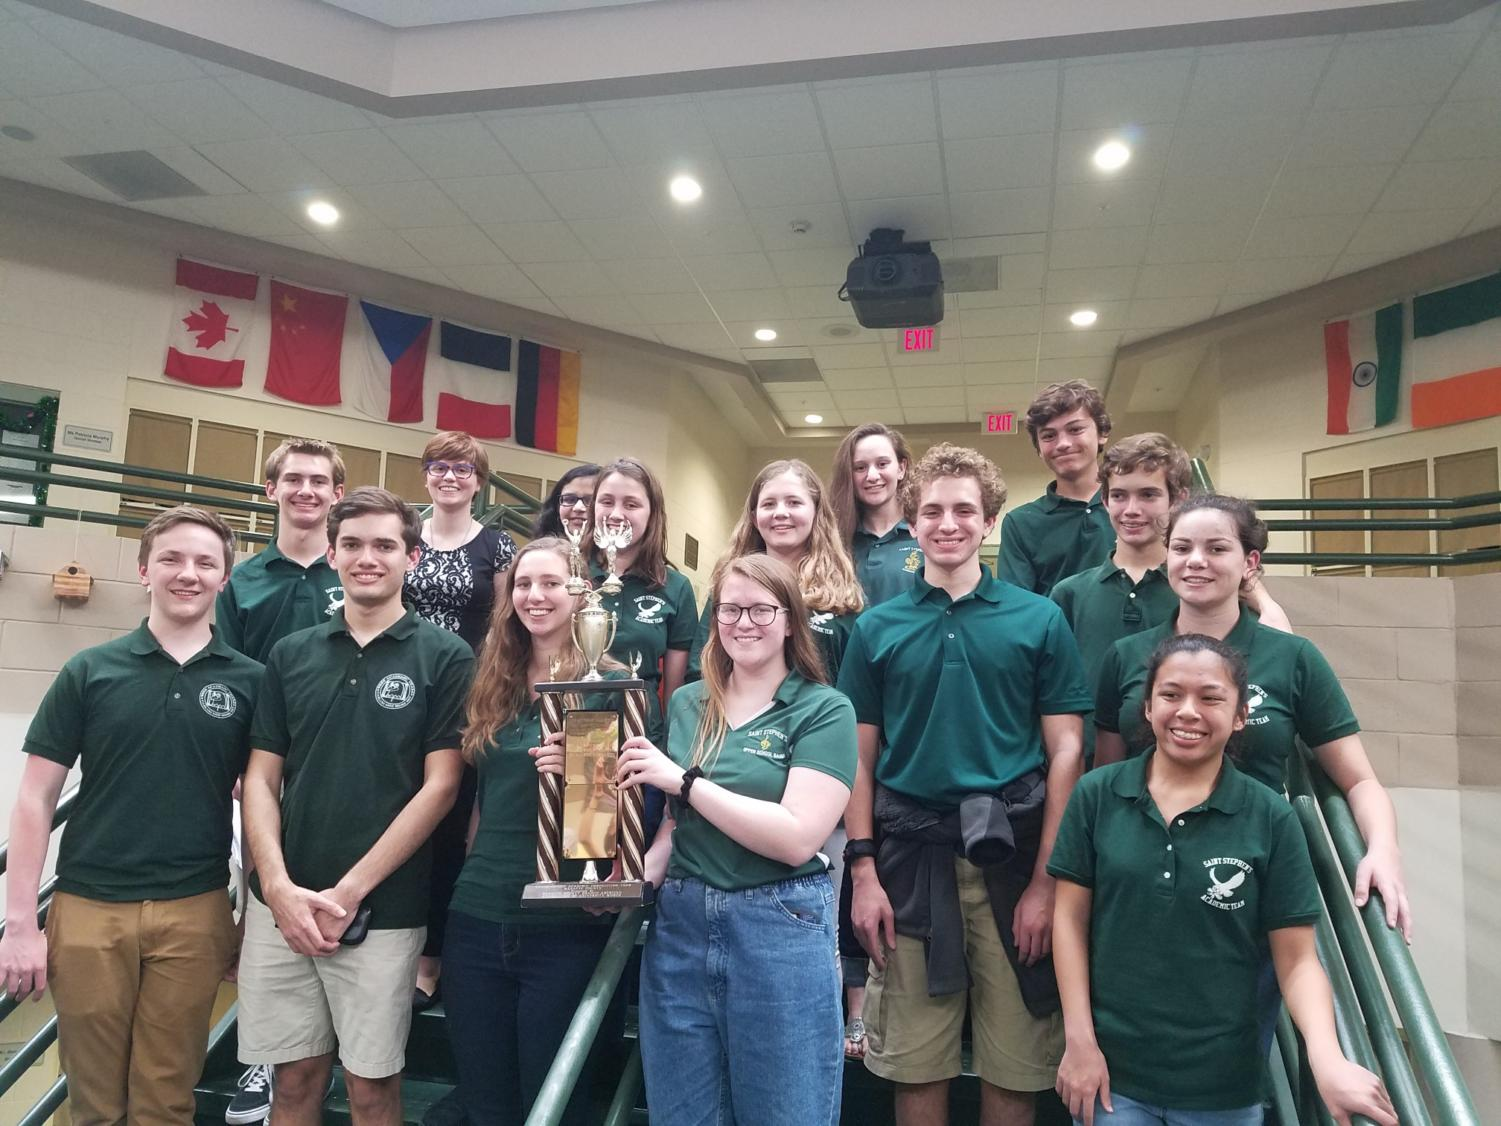 The 2018-19 academic team poses for a group photo, proudly presenting their trophy.